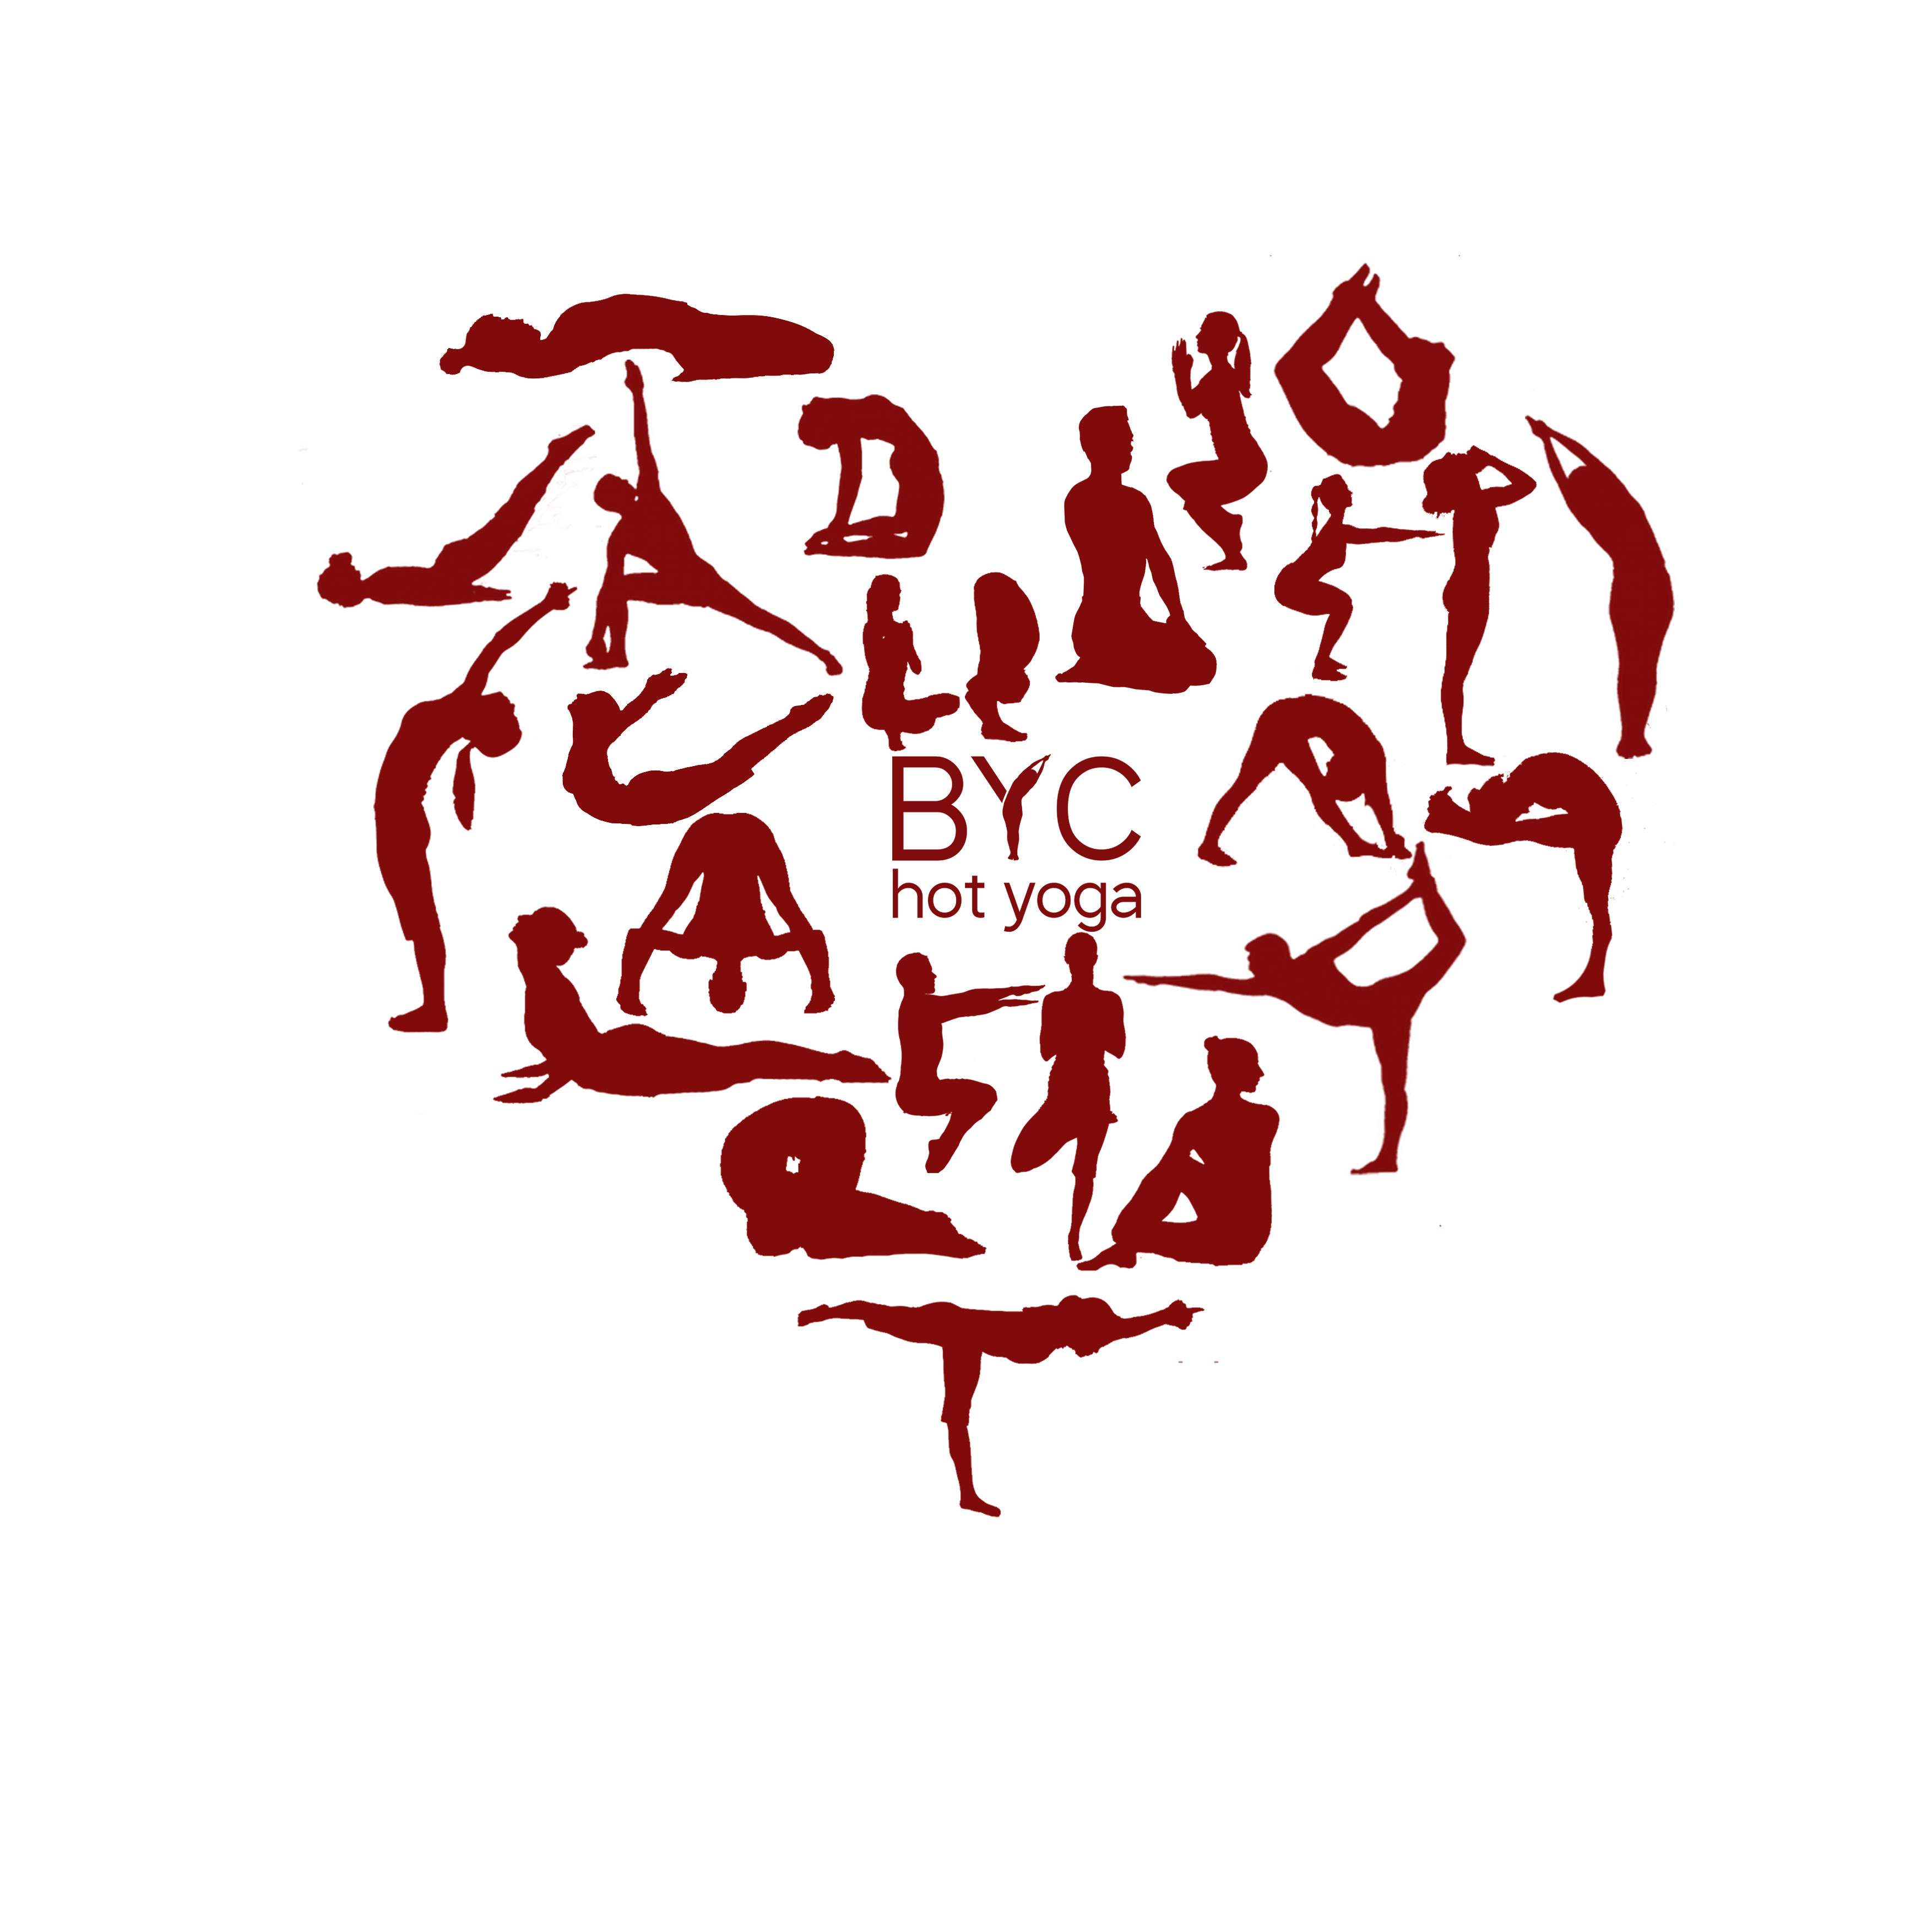 heart-with-byc-logo-inside